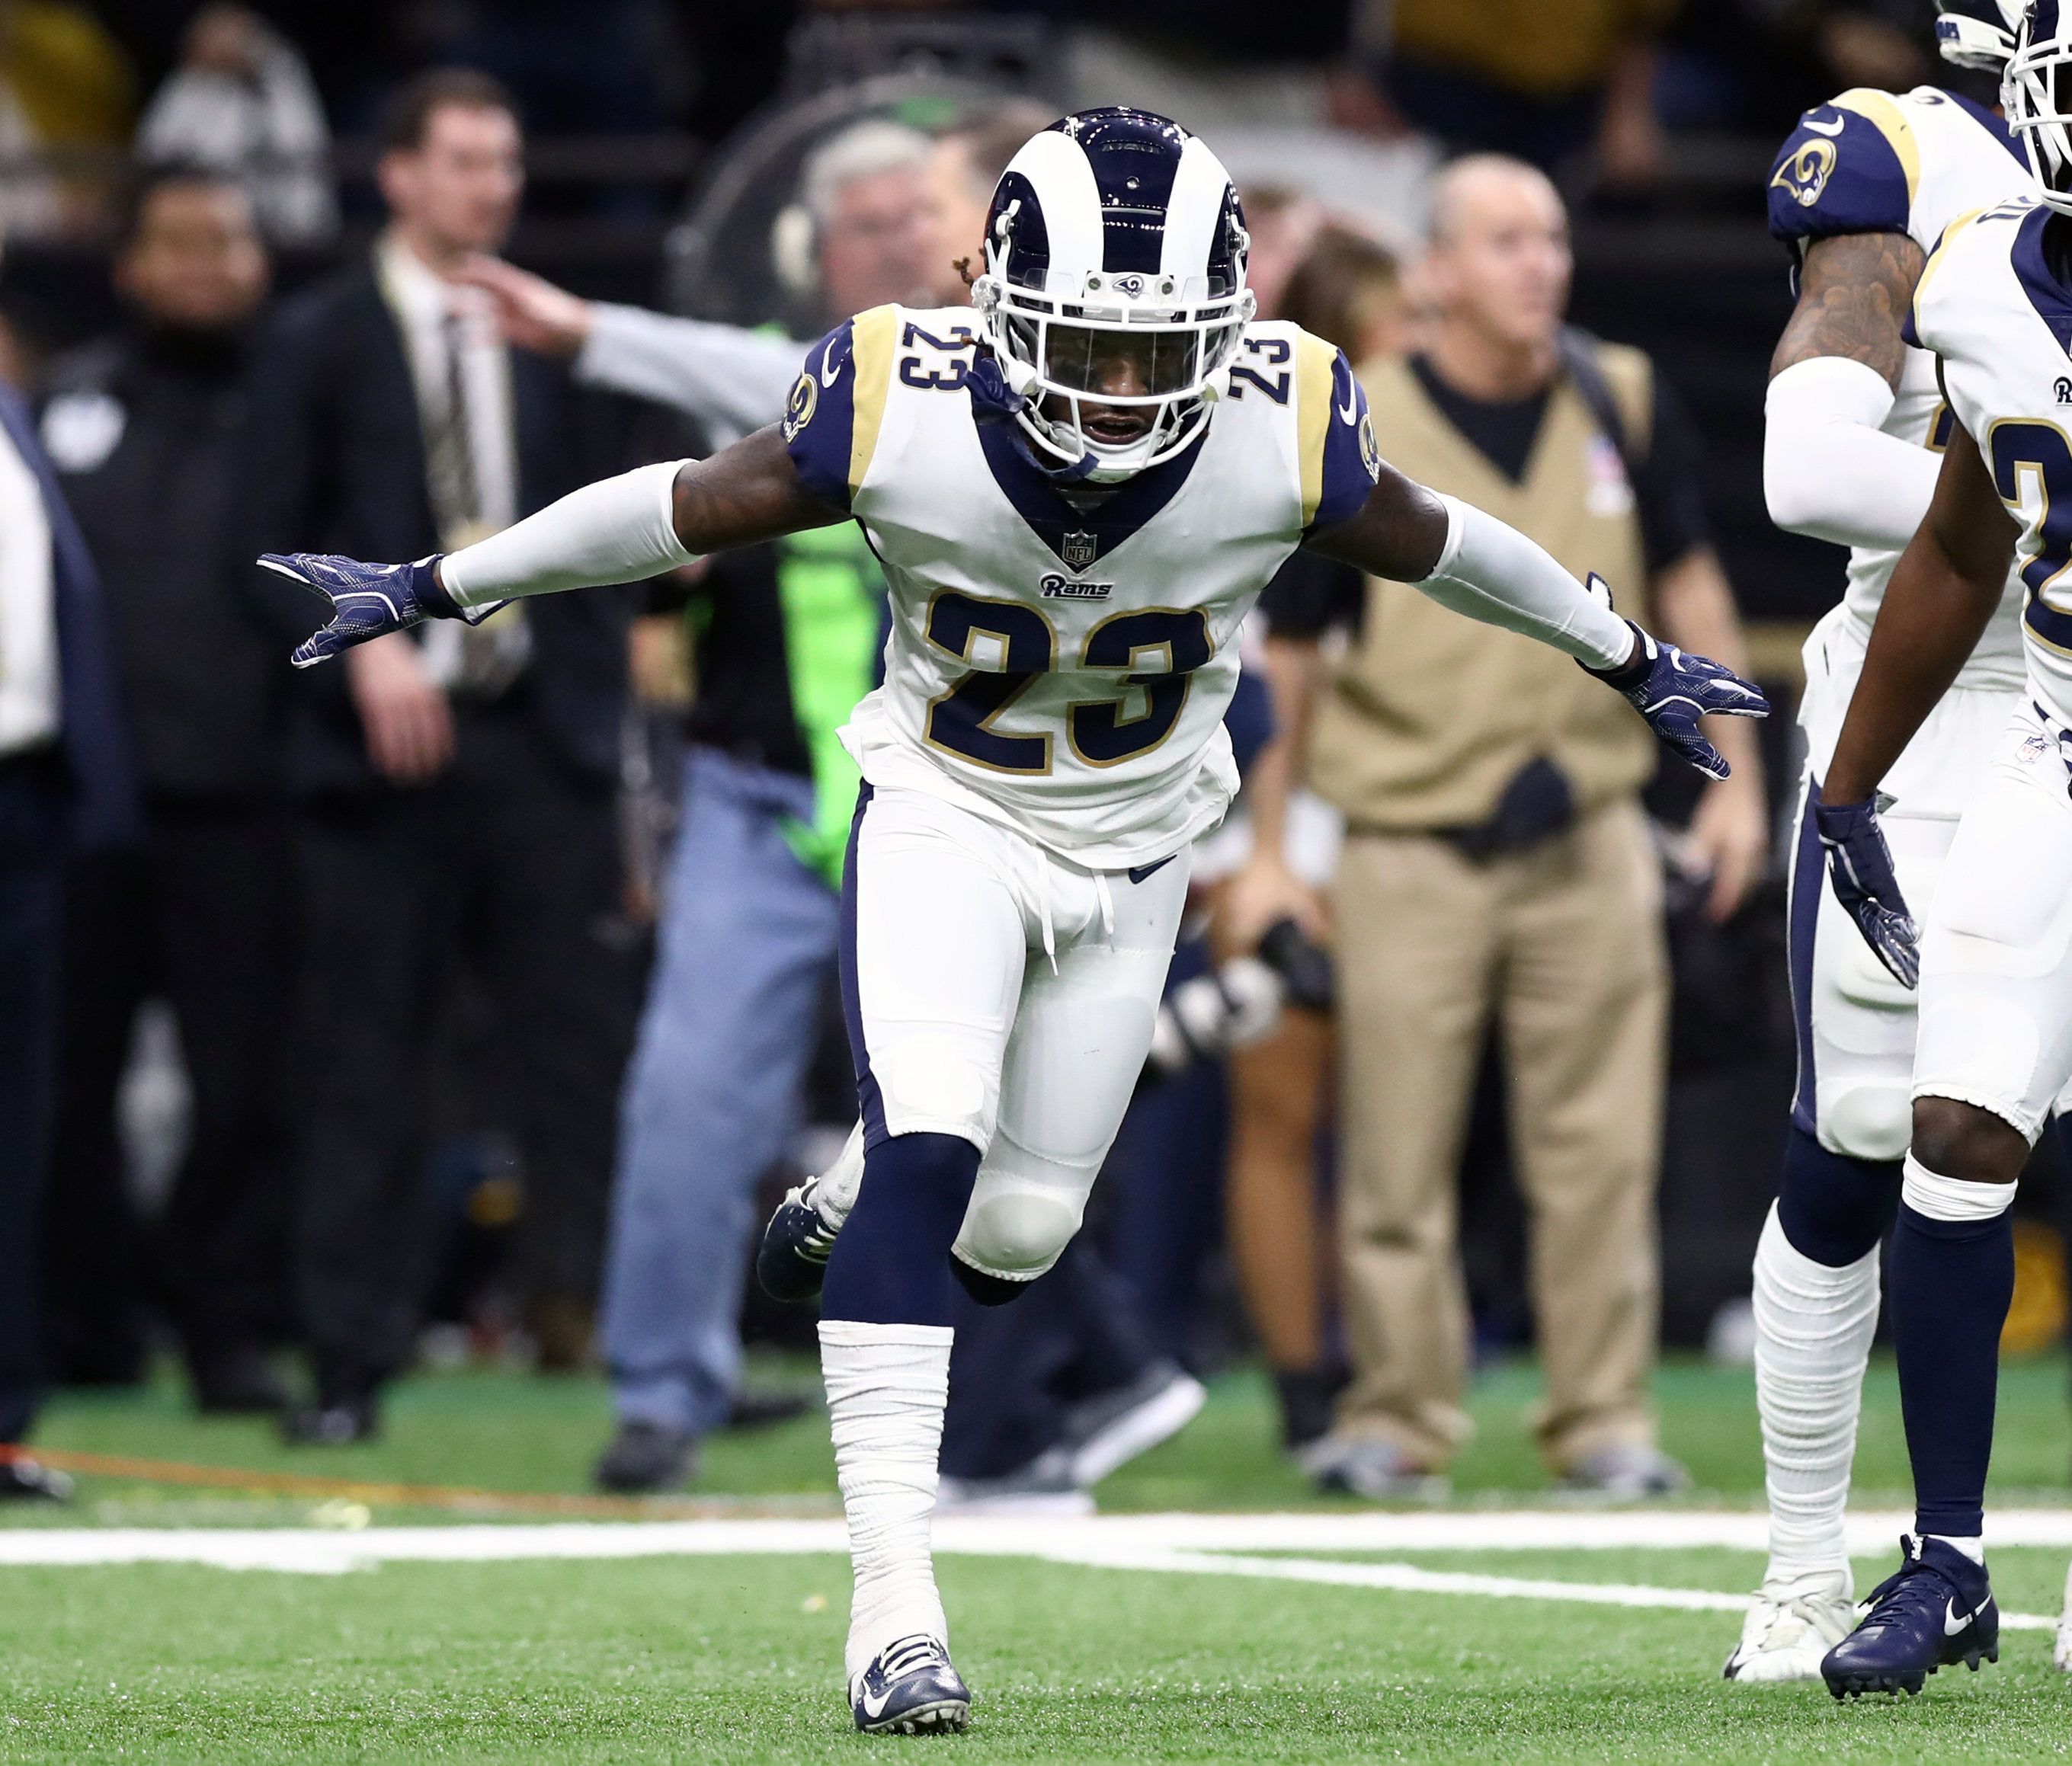 NFL finally hands down punishment for missed pass interference call on Nickell Robey-Coleman vs Saints